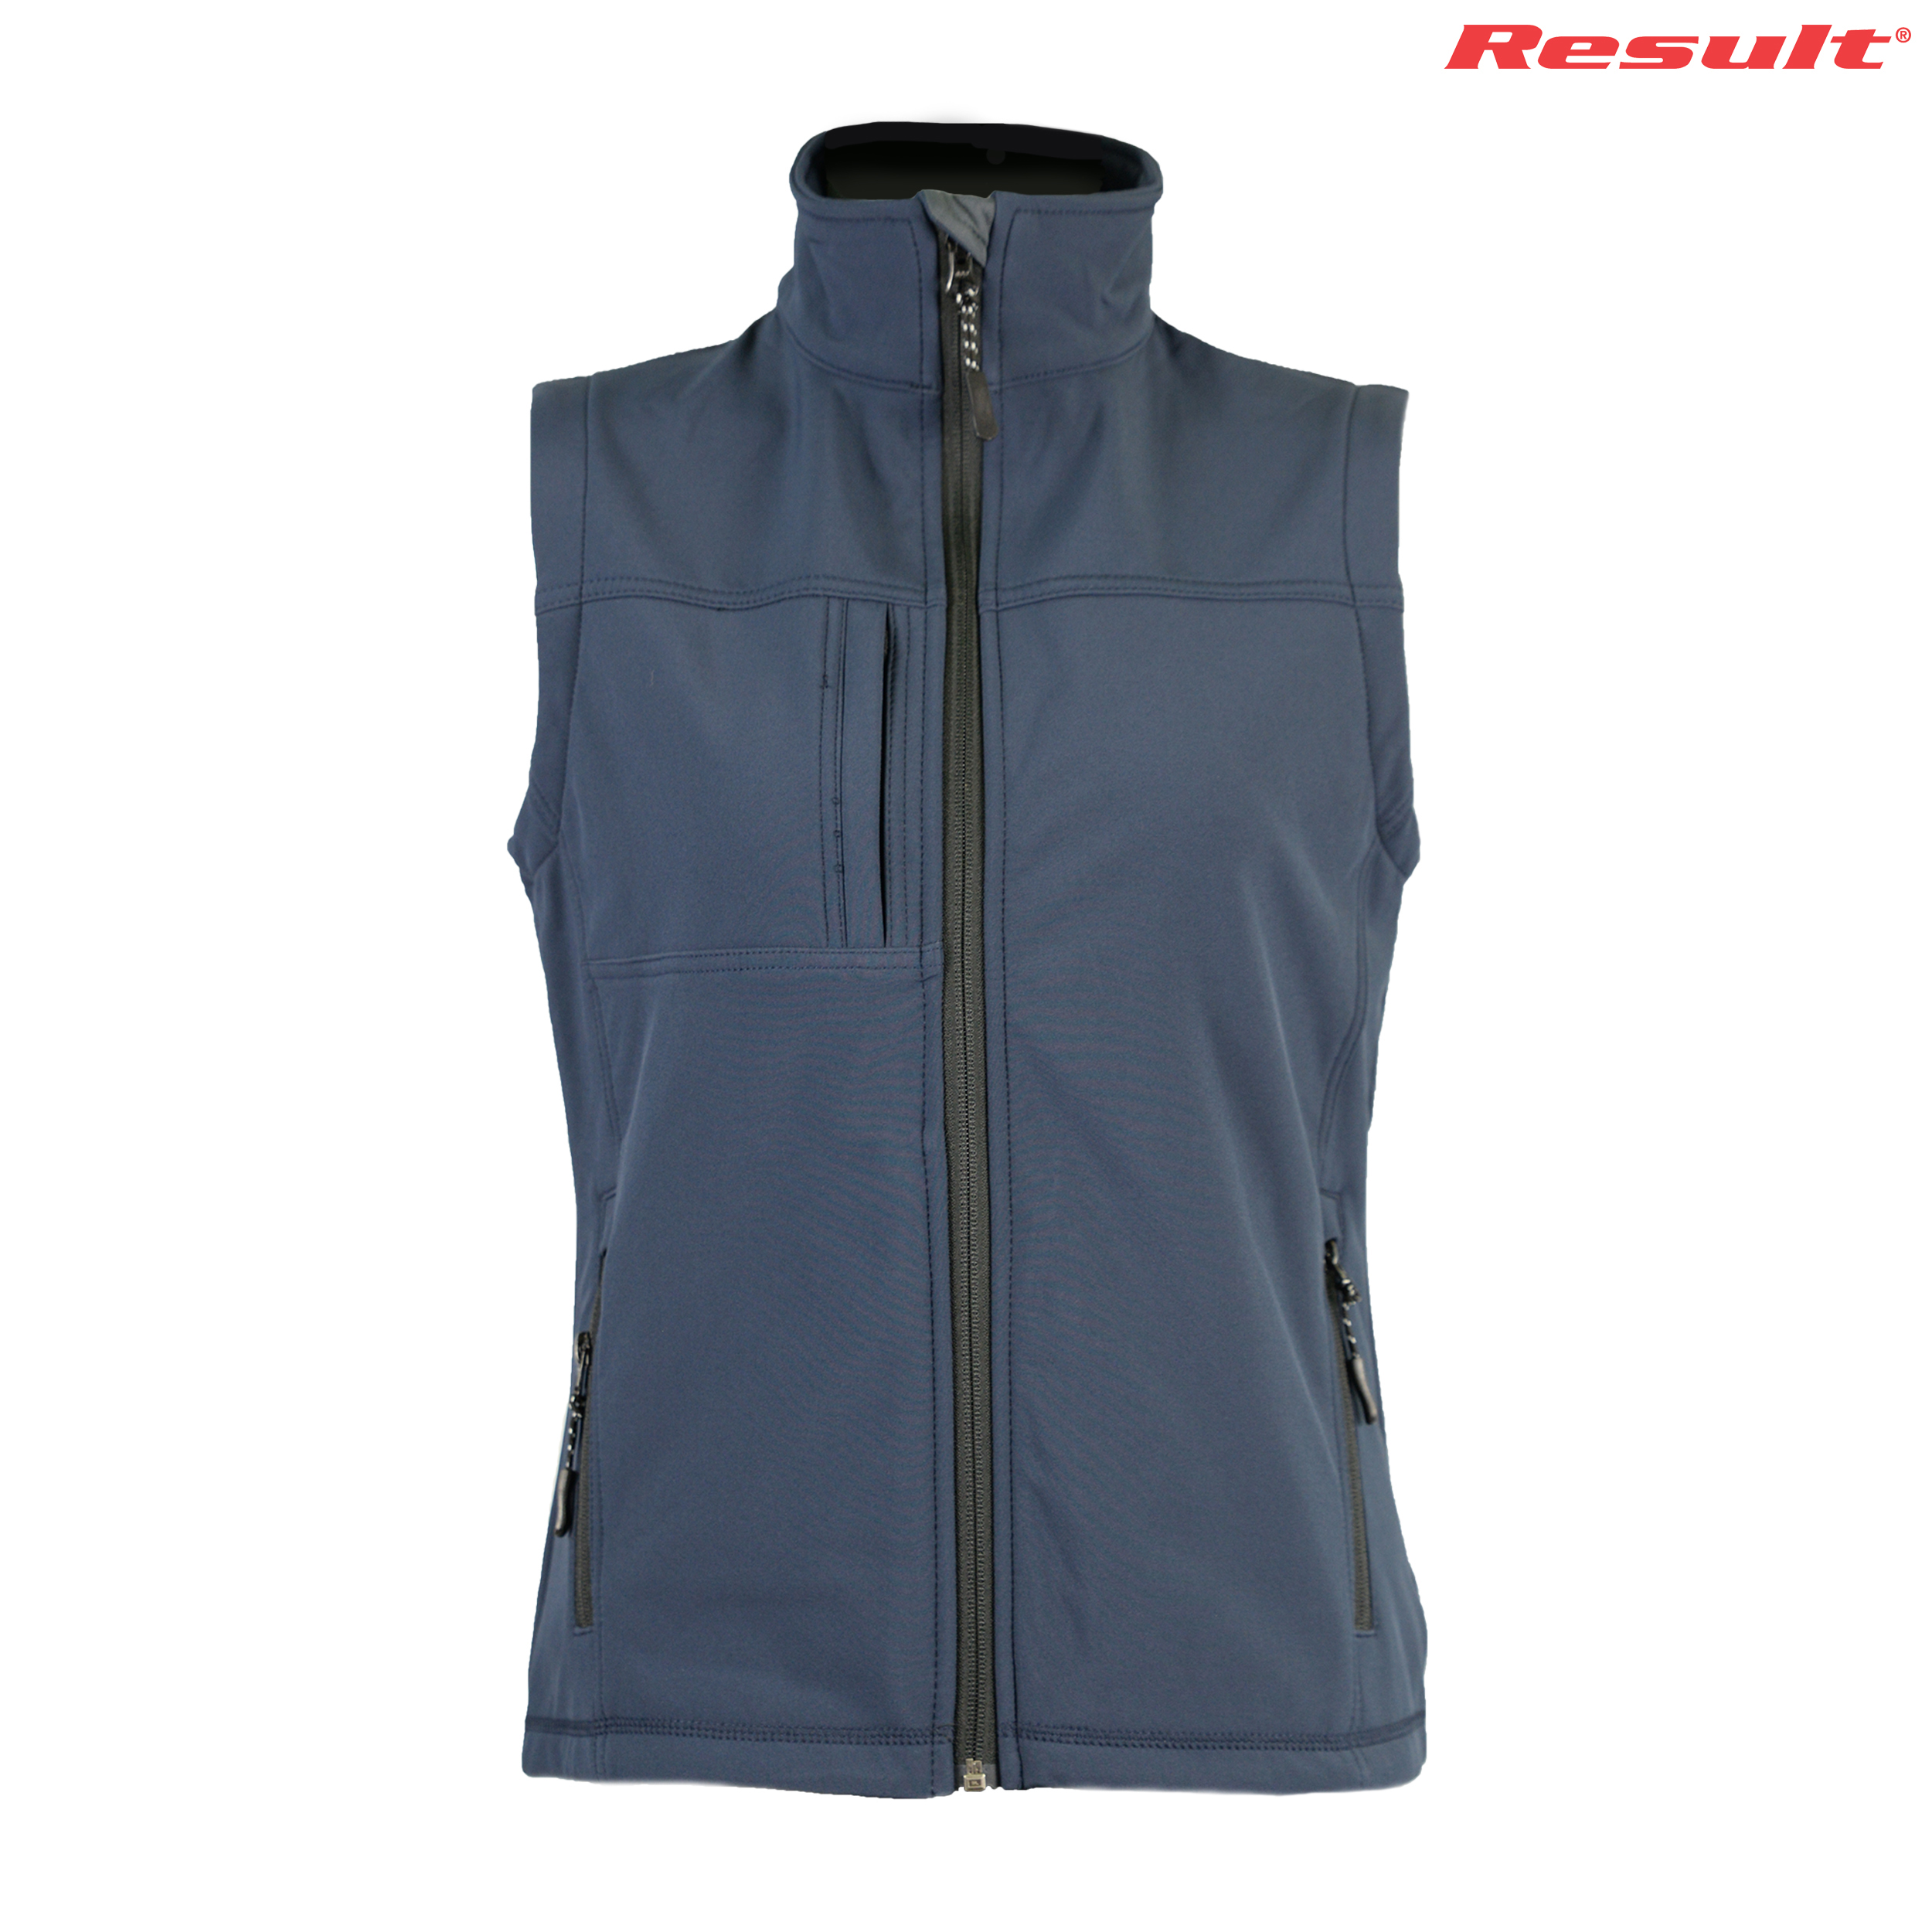 Result Ladies Classic Soft Shell Vest